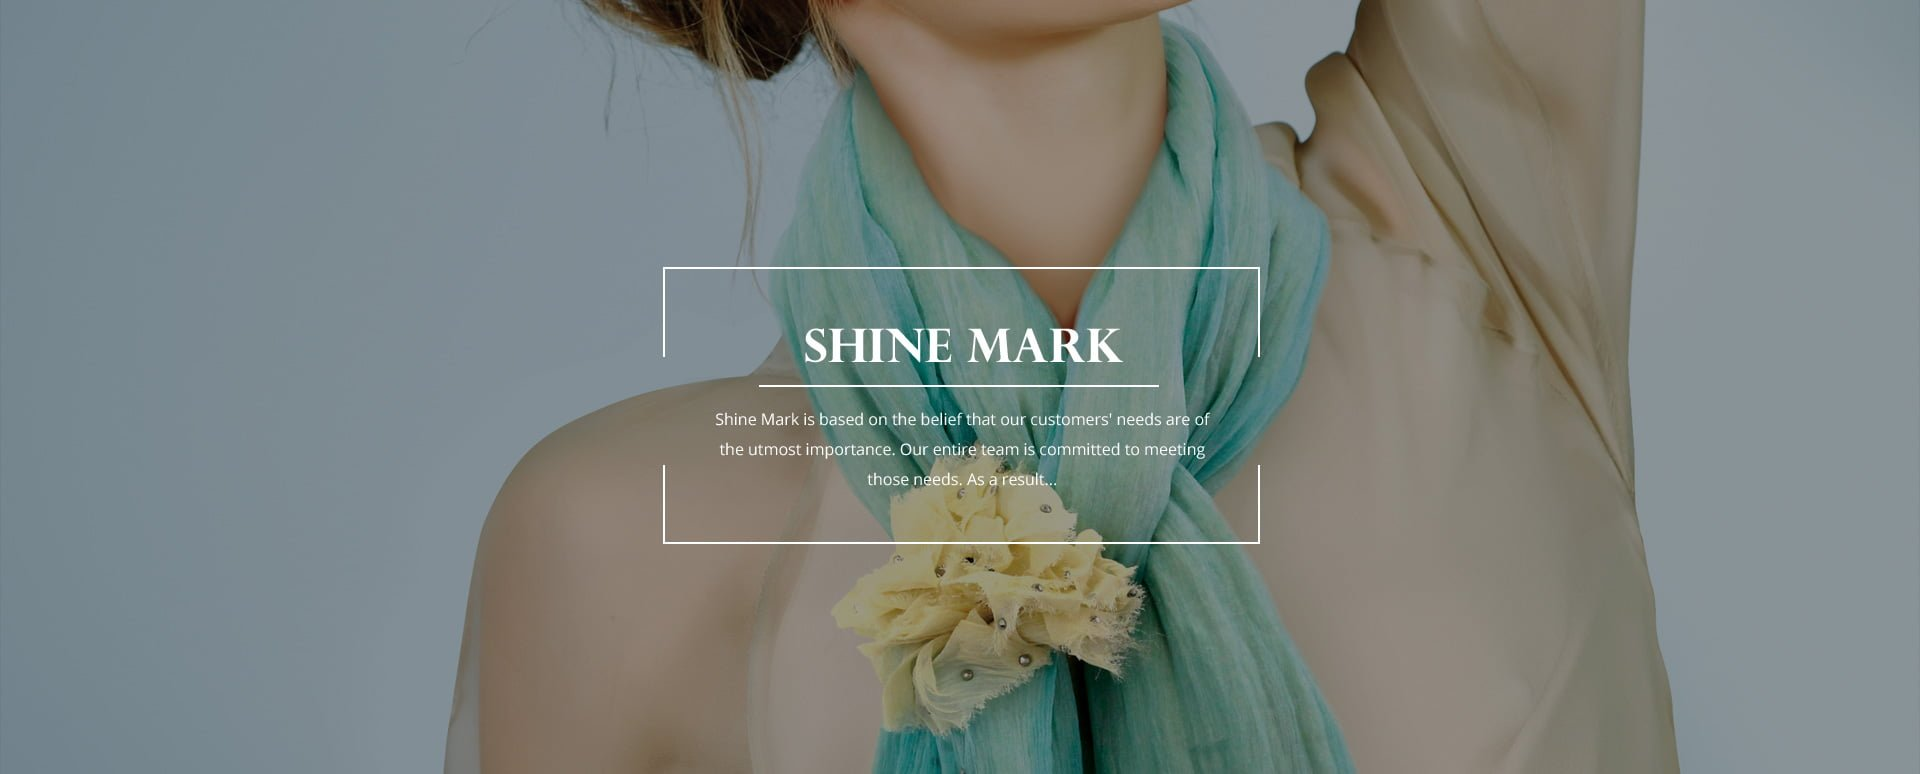 Ecommerce_shine_mark